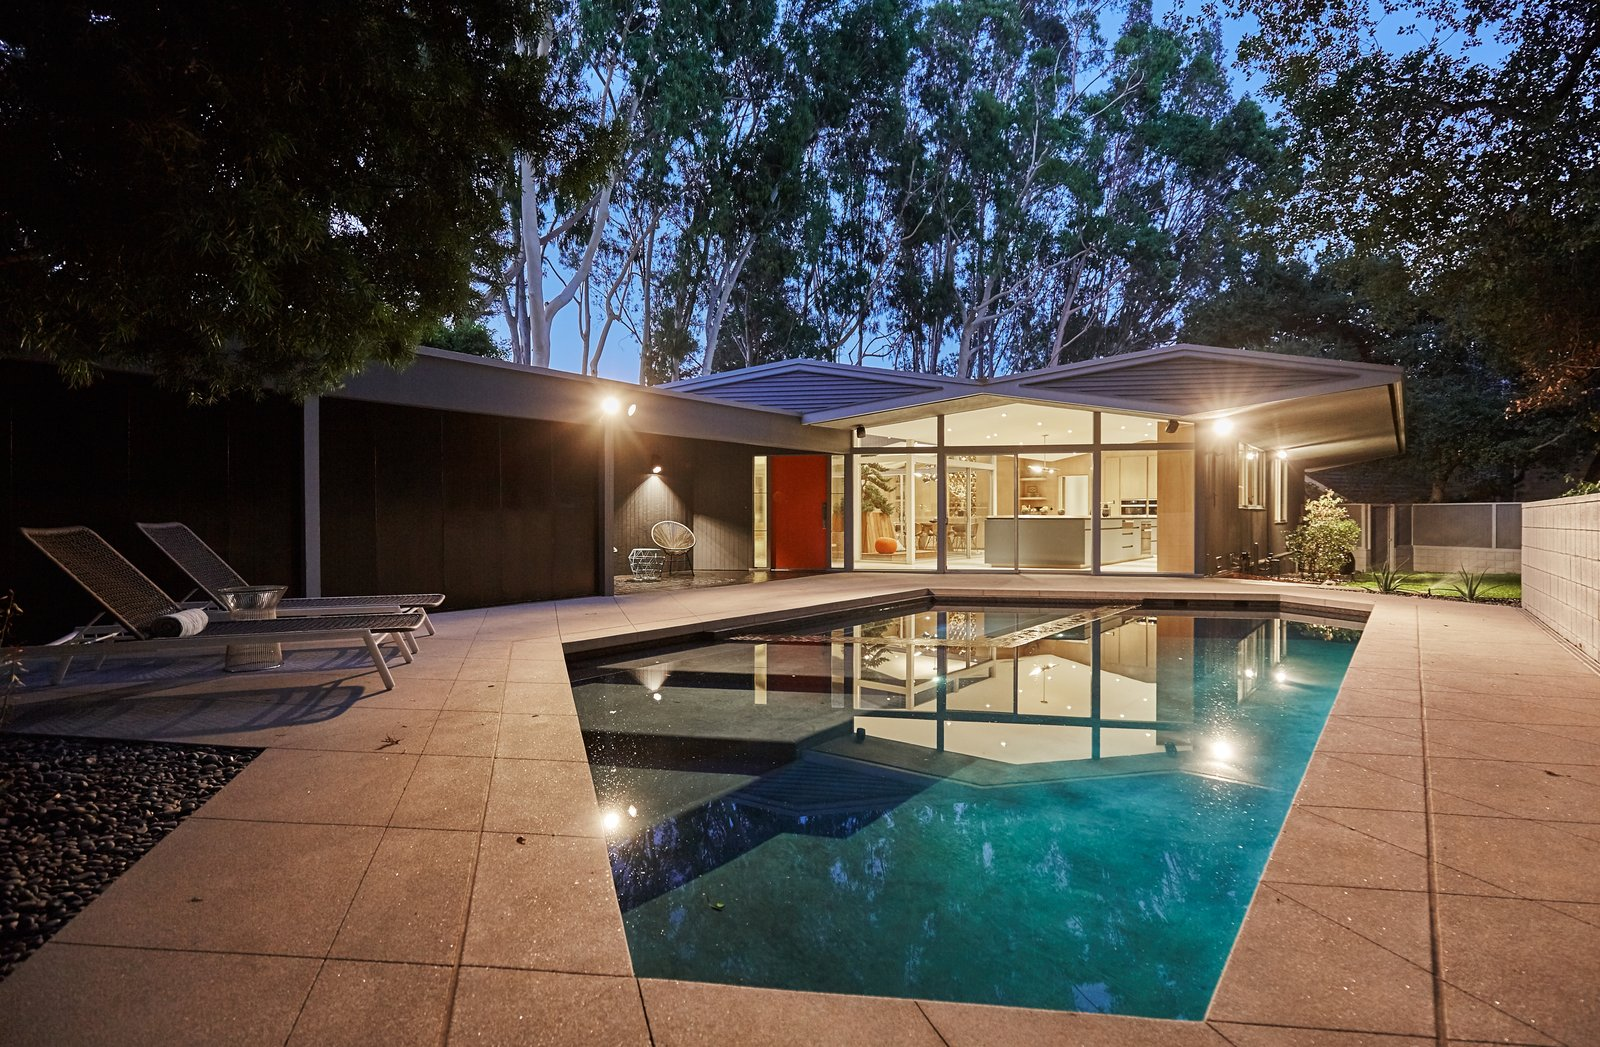 Outdoor, Swimming Pools, Tubs, Shower, and Back Yard  Photo 10 of 10 in A Hexagonal Midcentury Residence in Southern California Offered at $2.89M